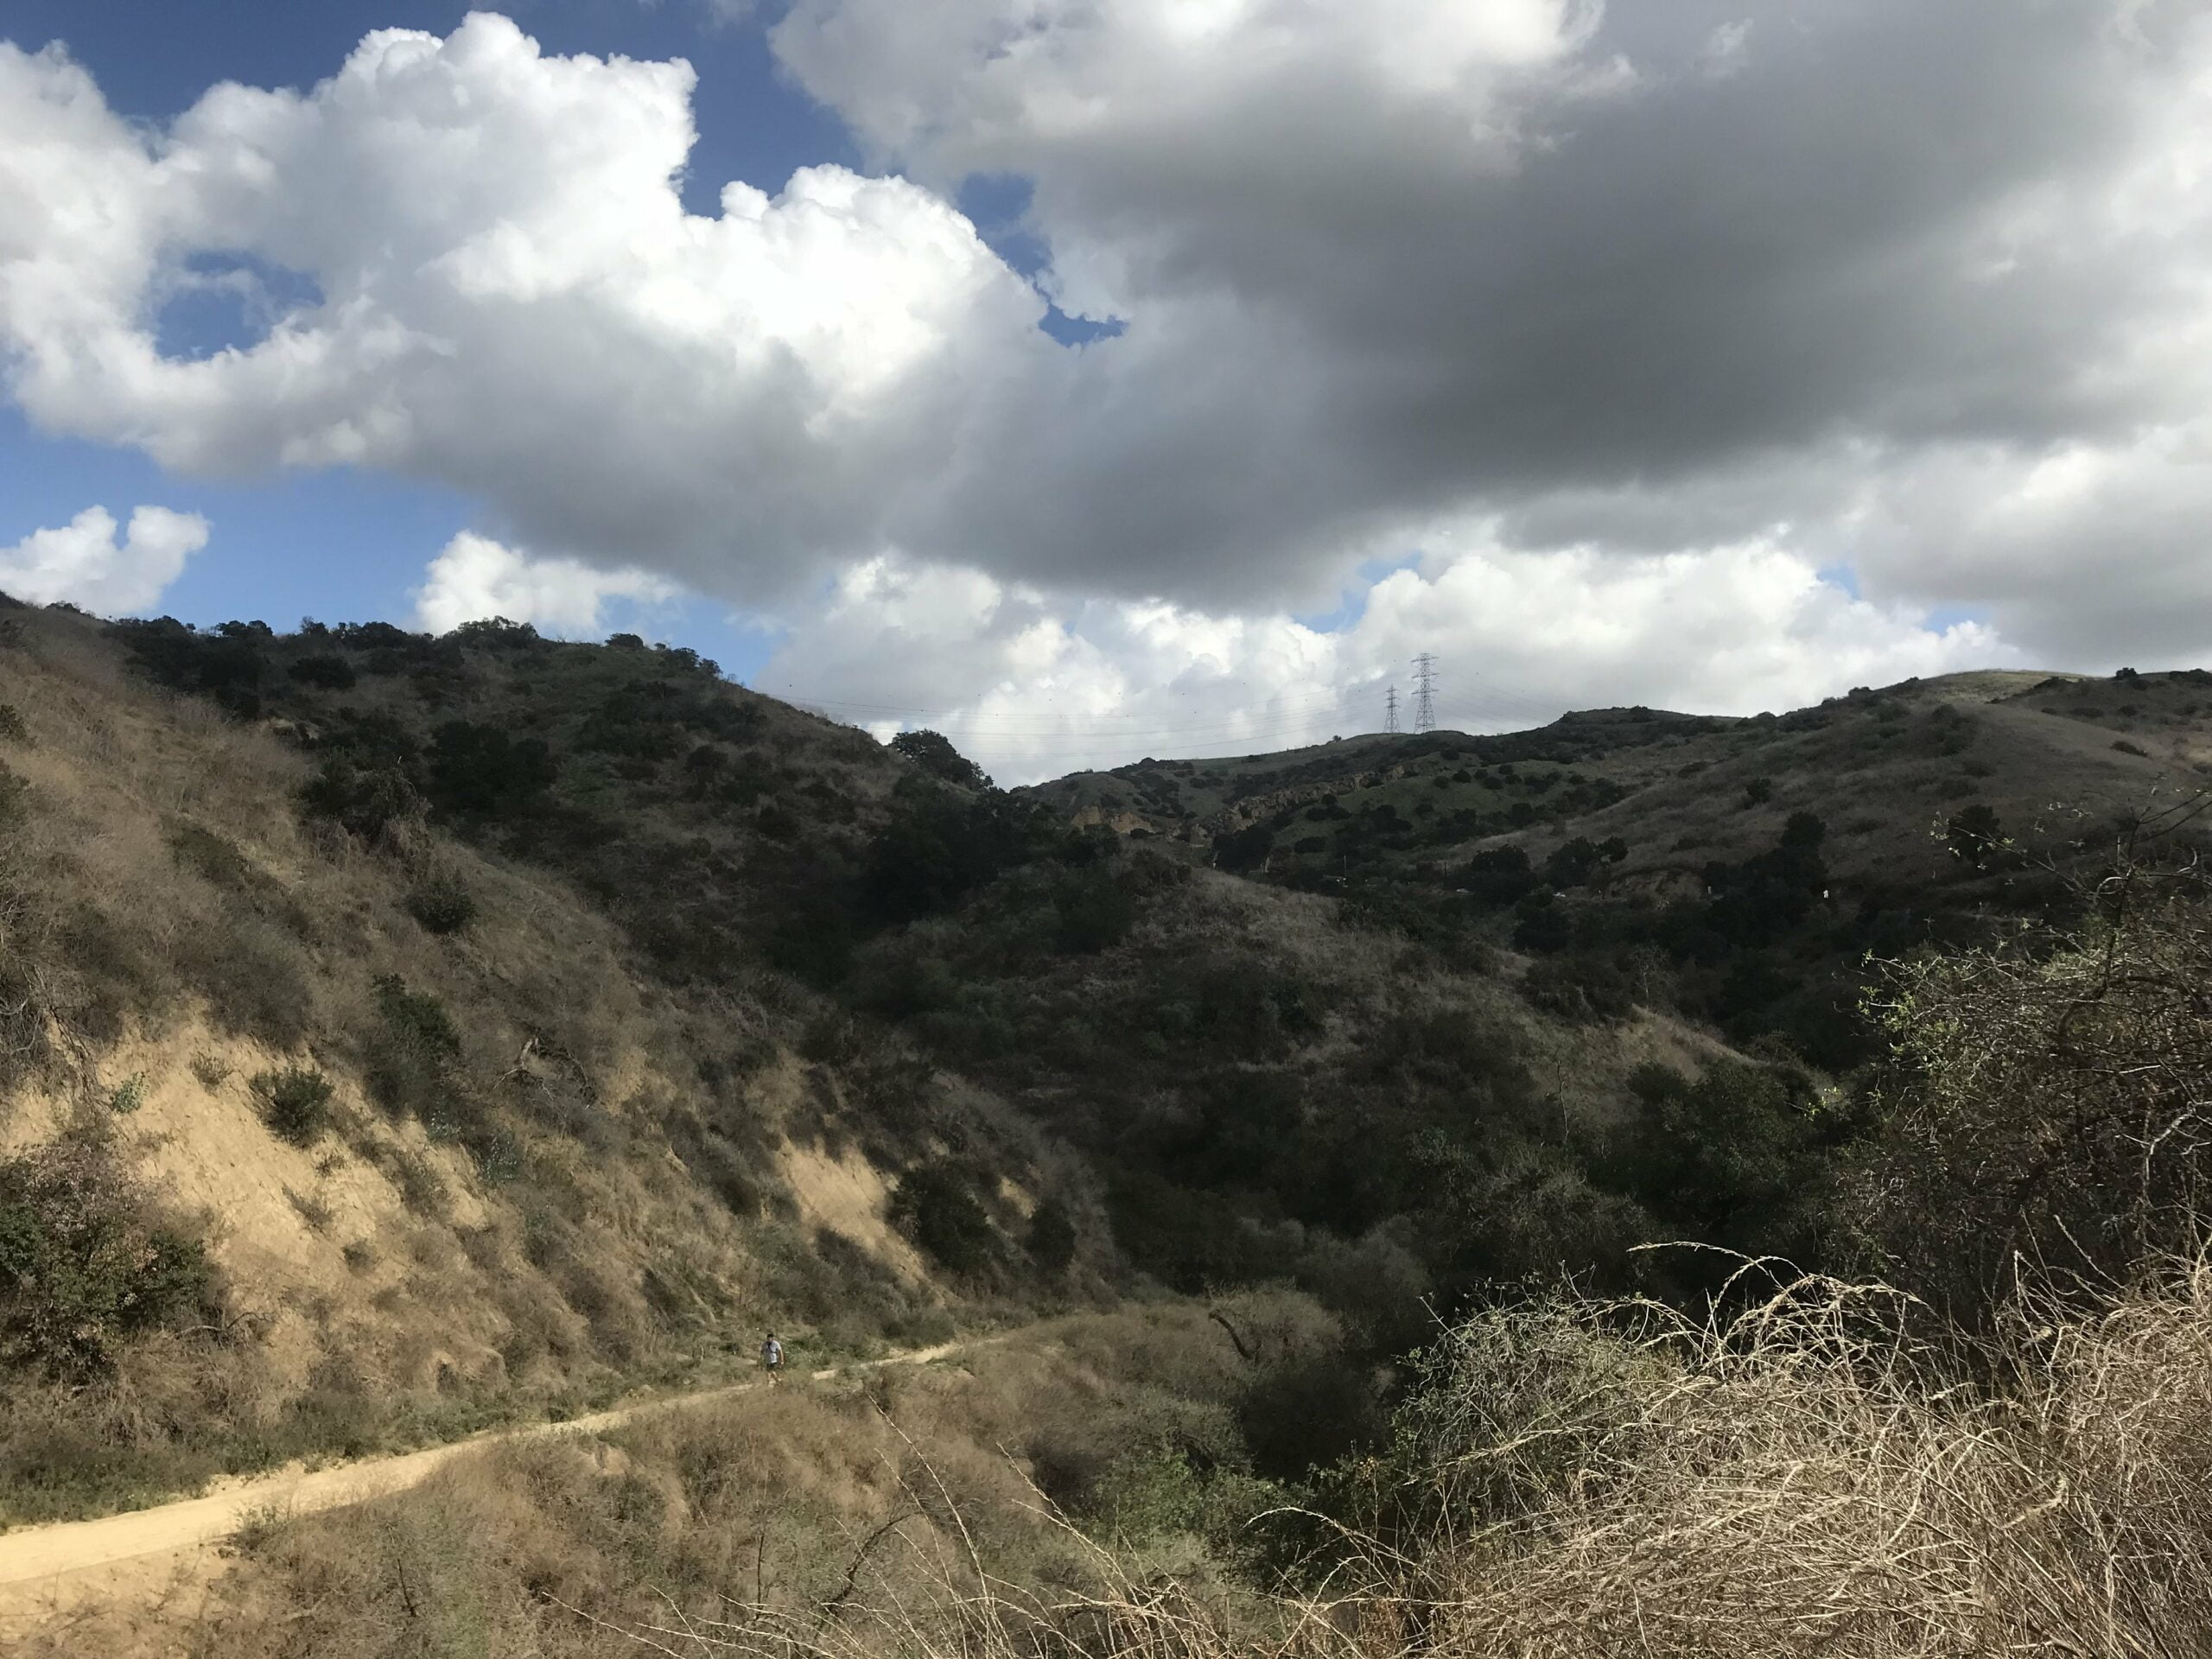 Turnbull Canyon sumac trail